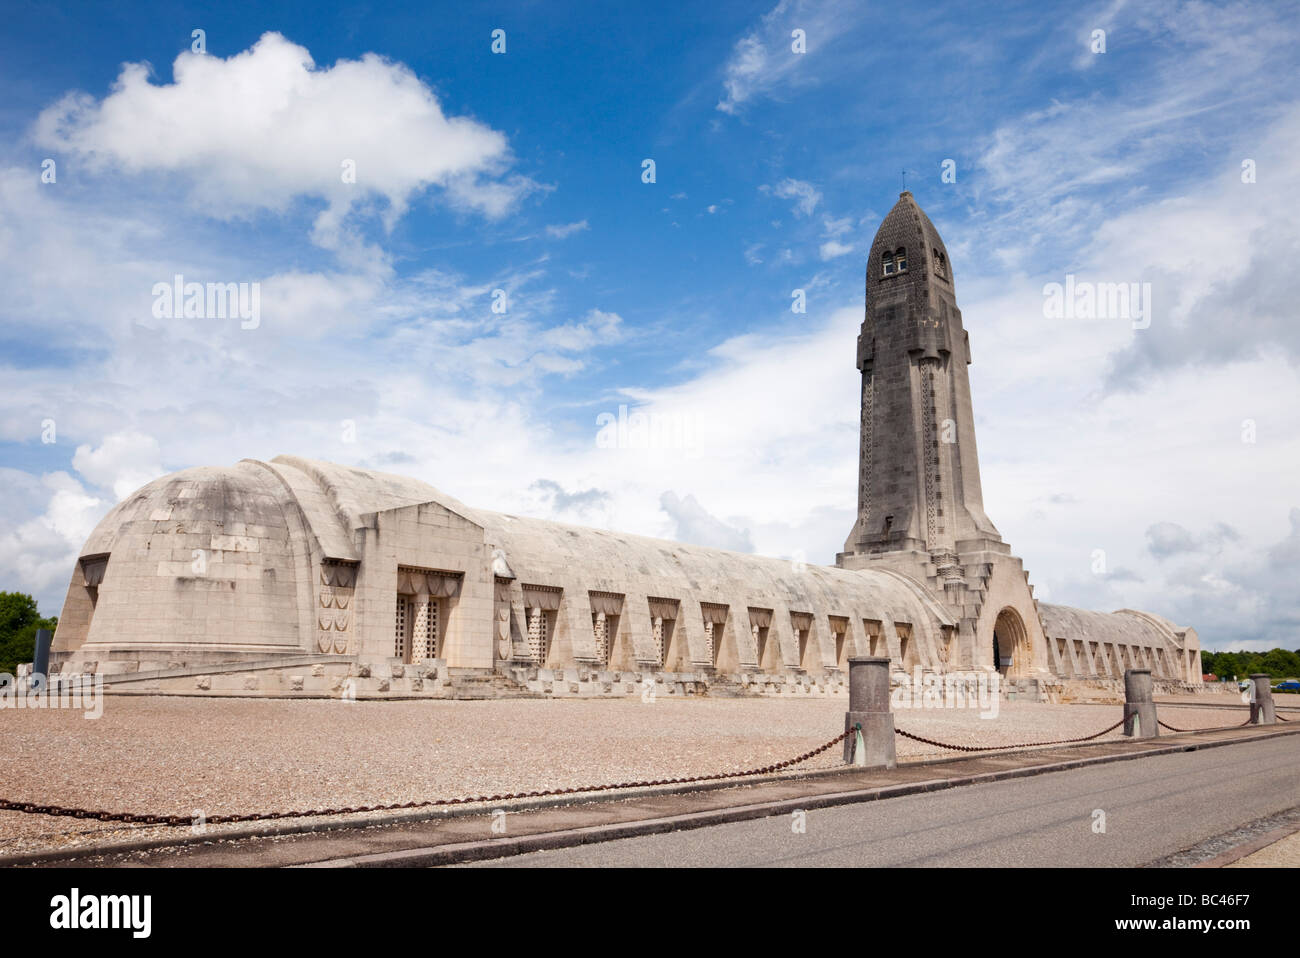 Douaumont Verdun France French WW1 Ossuary Ossuaire de Douaumont at the National war cemetery for the battle of - Stock Image